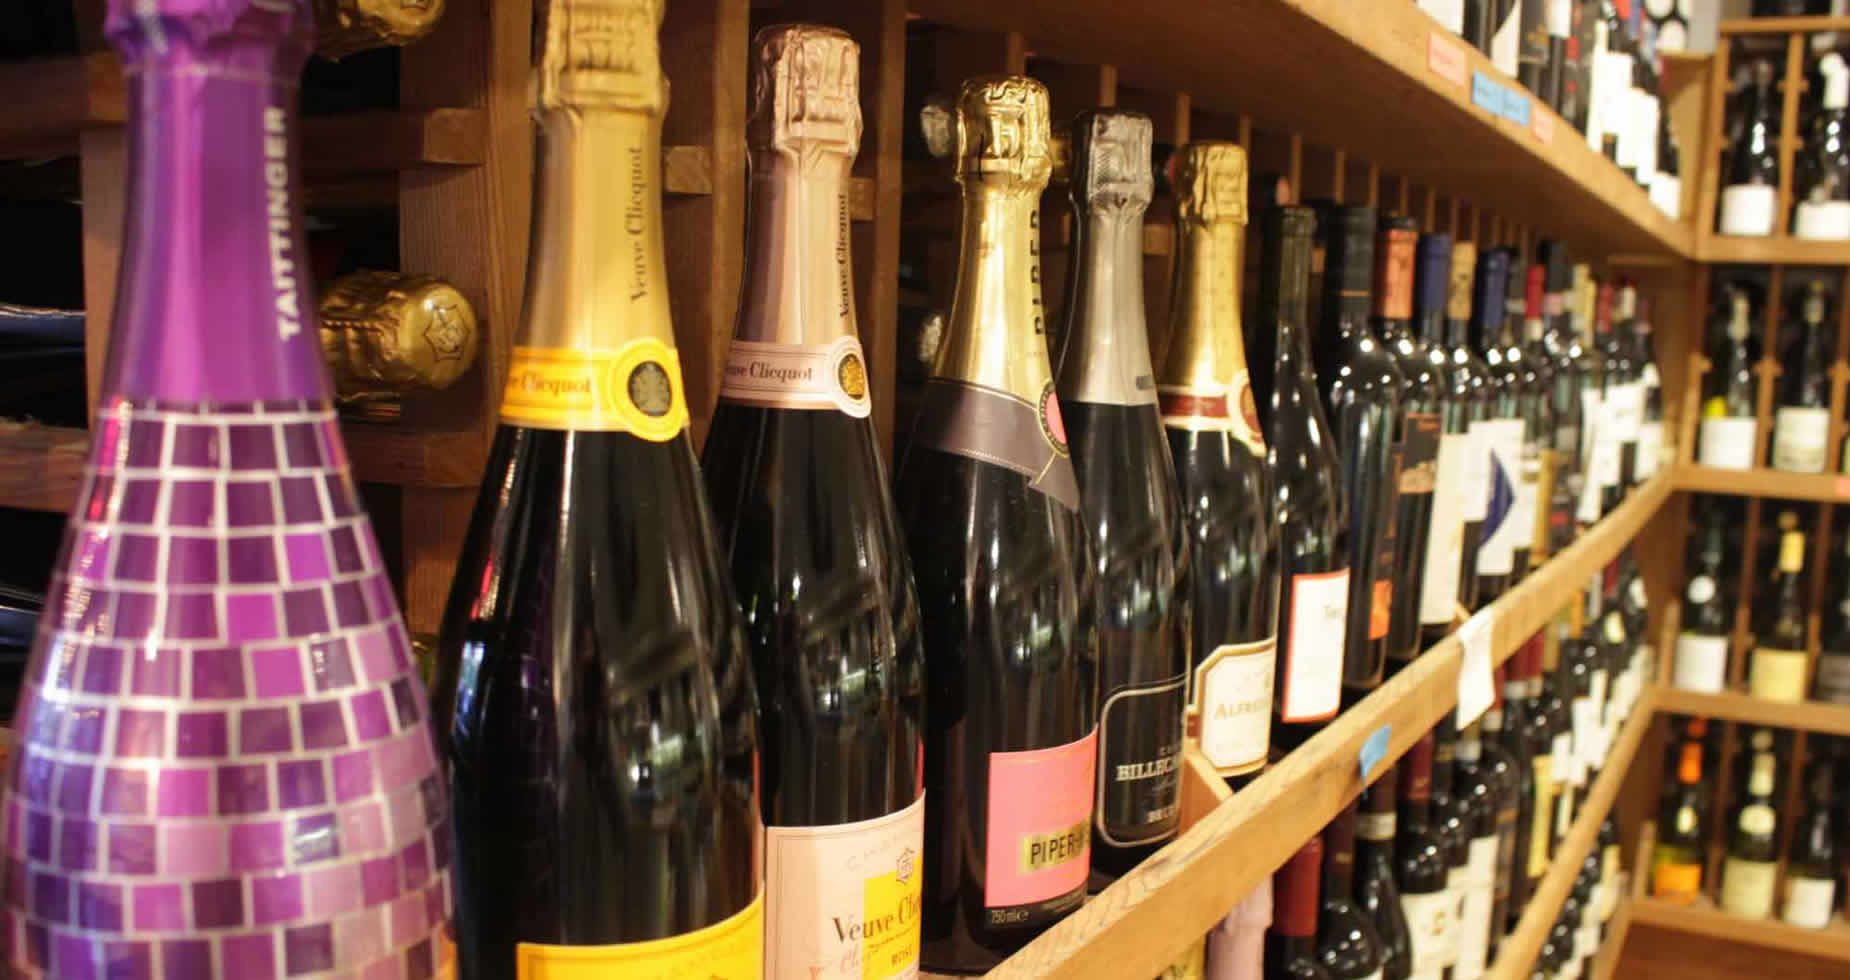 Sparkling Wines on the Shelf at Tony's Off Third